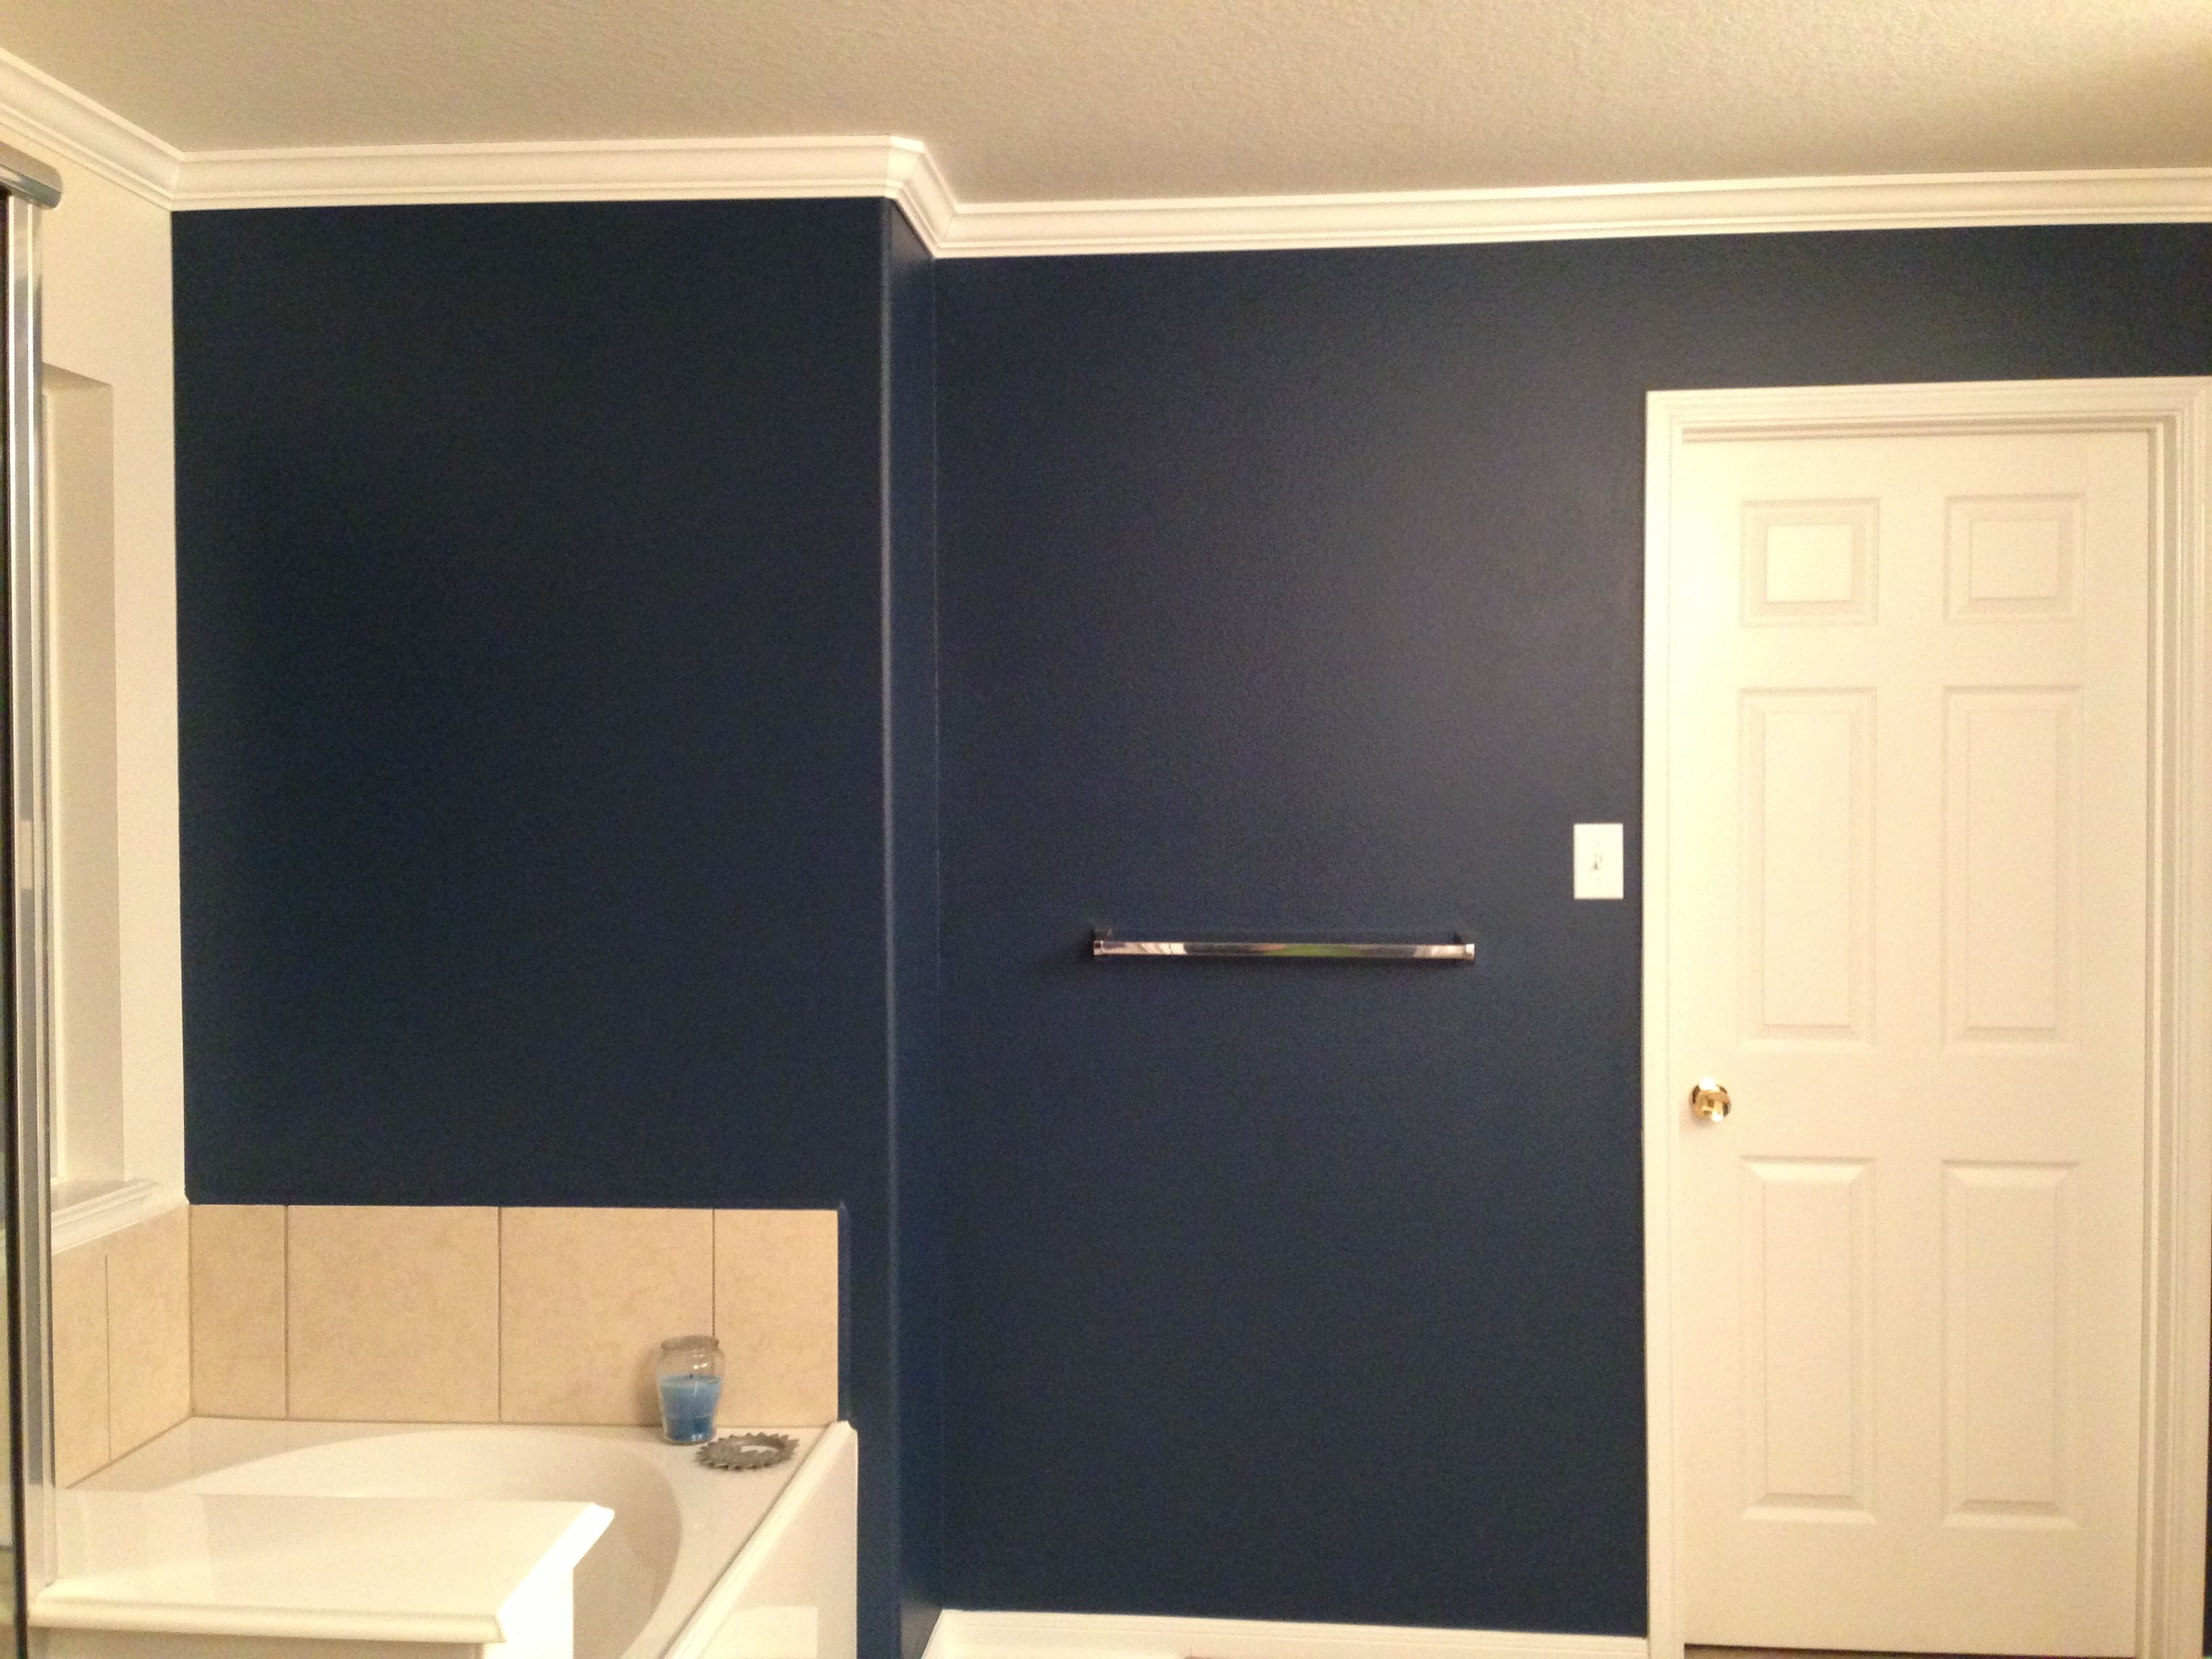 Dark Blue Bathroom Dark Blue Bathroom Wall Home Decor Pinterest Dark Blue